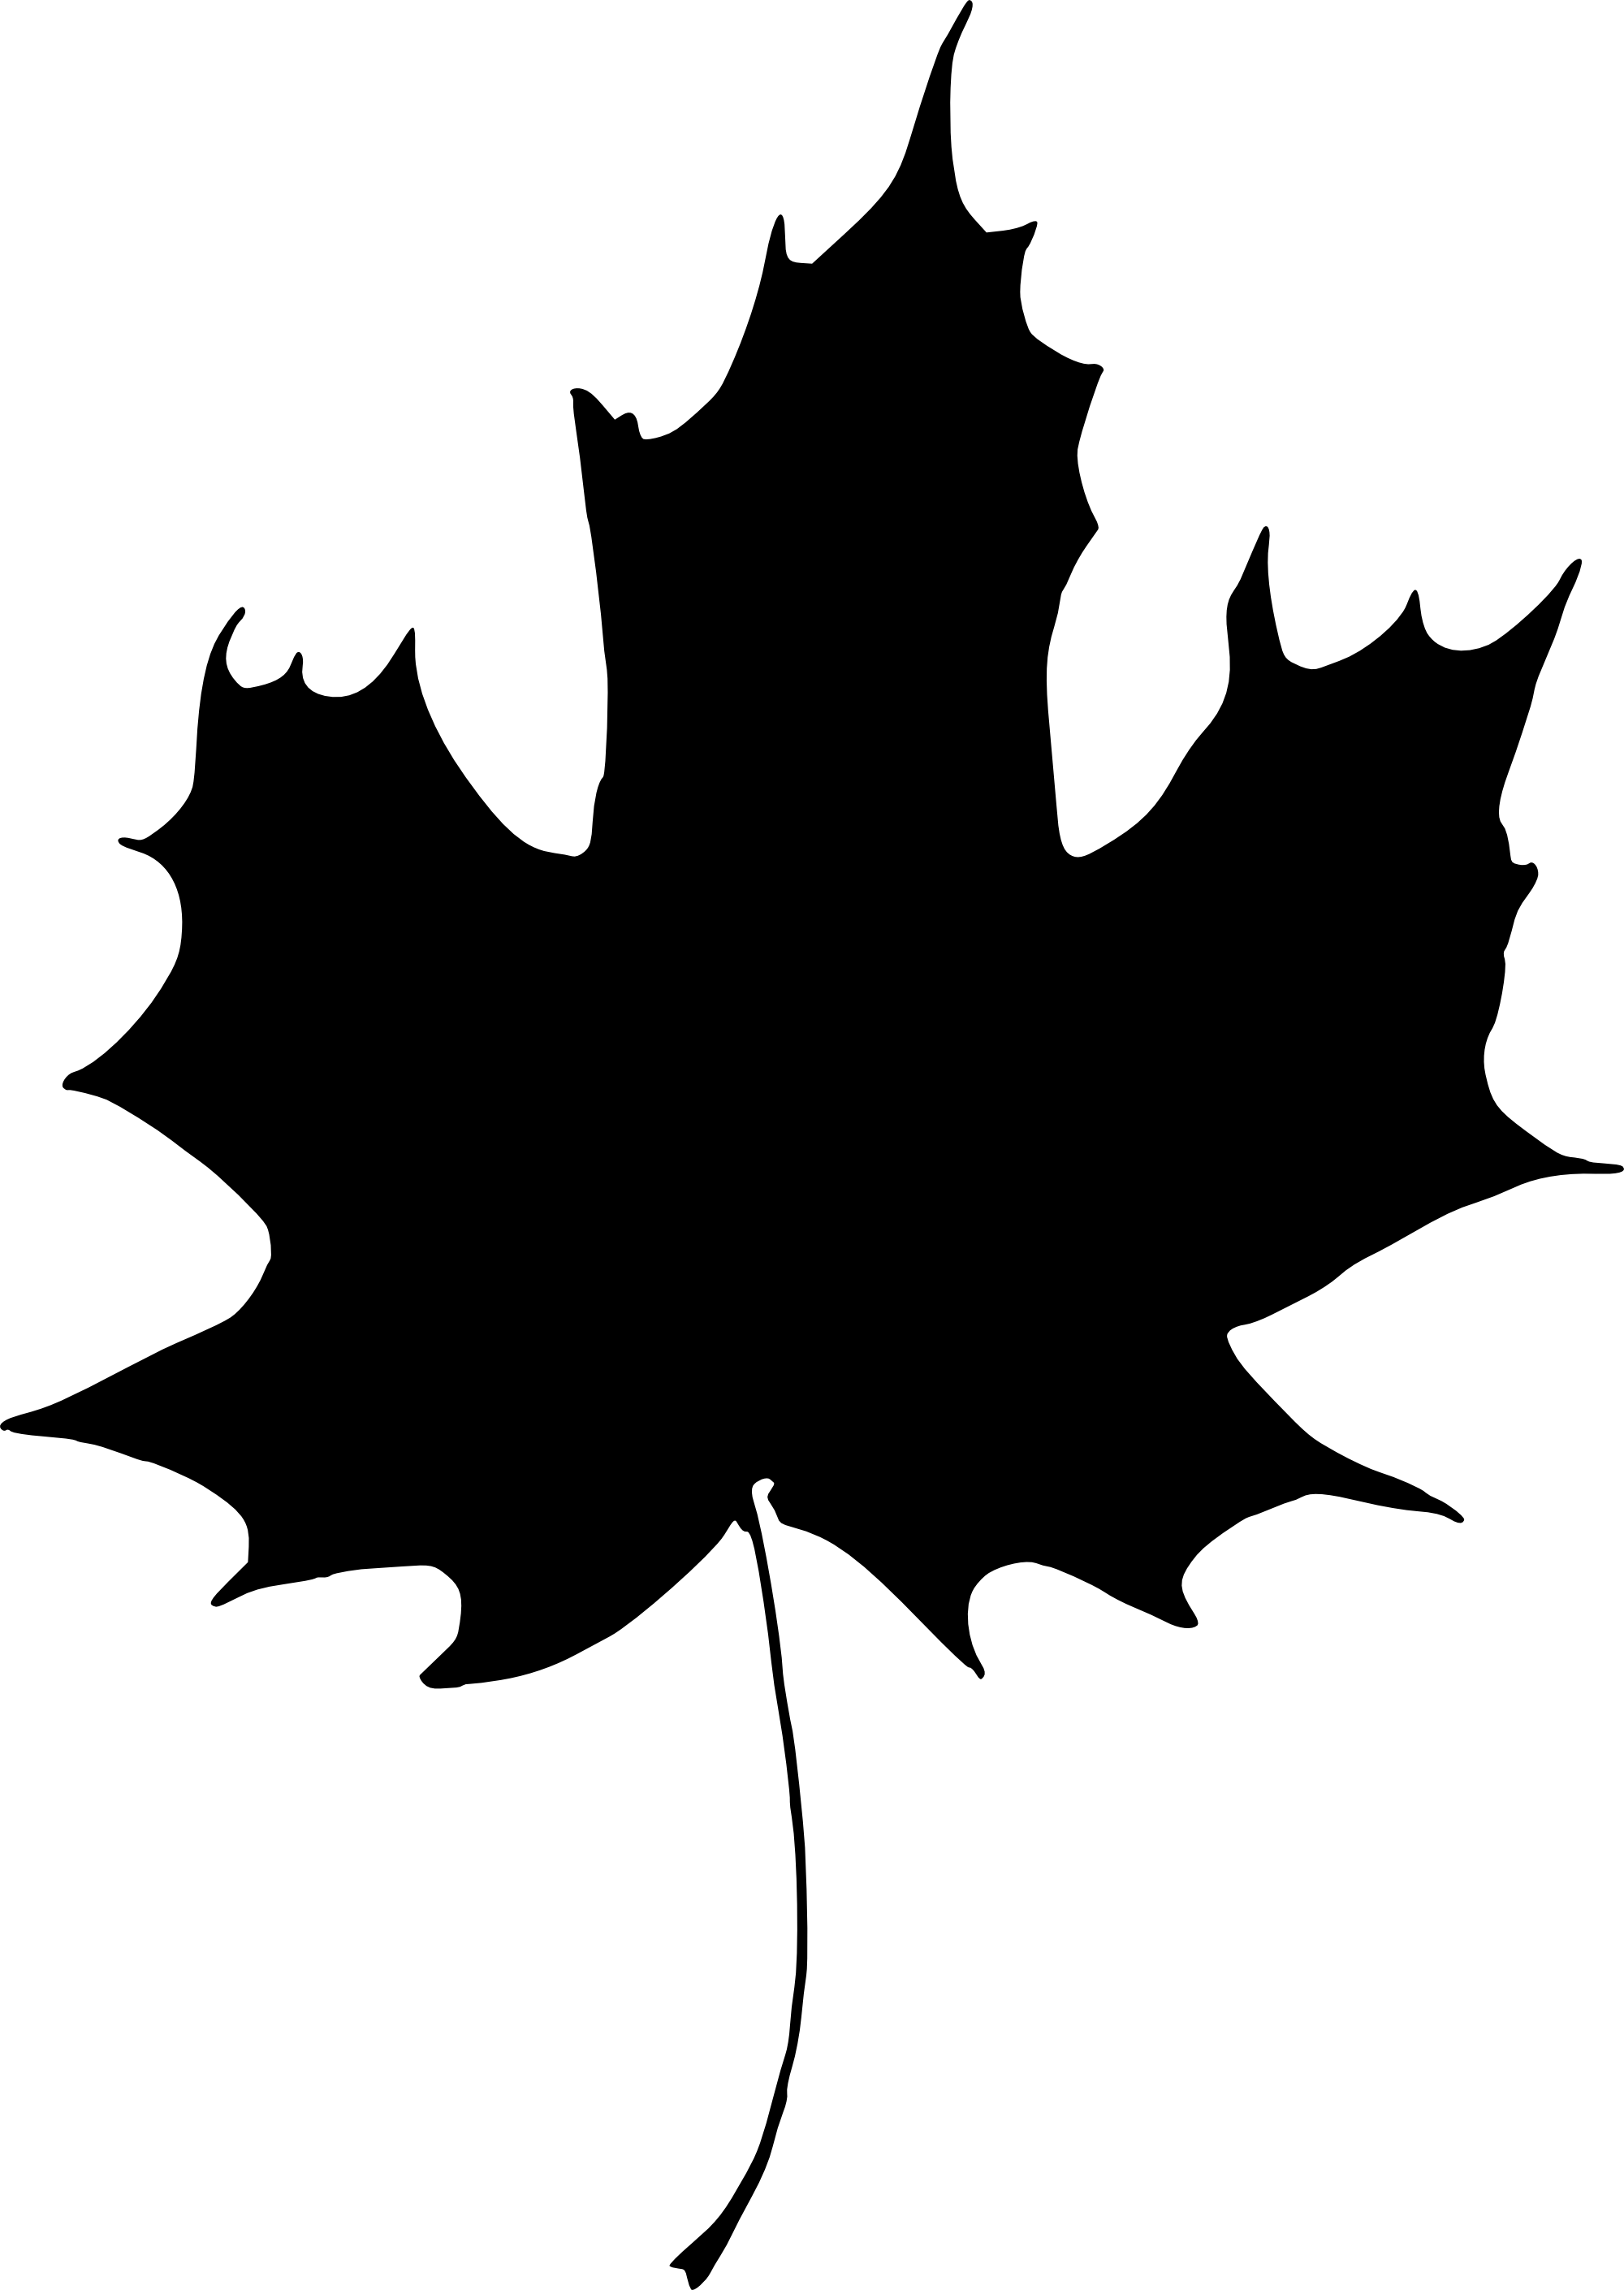 Holly Leaf Silhouette